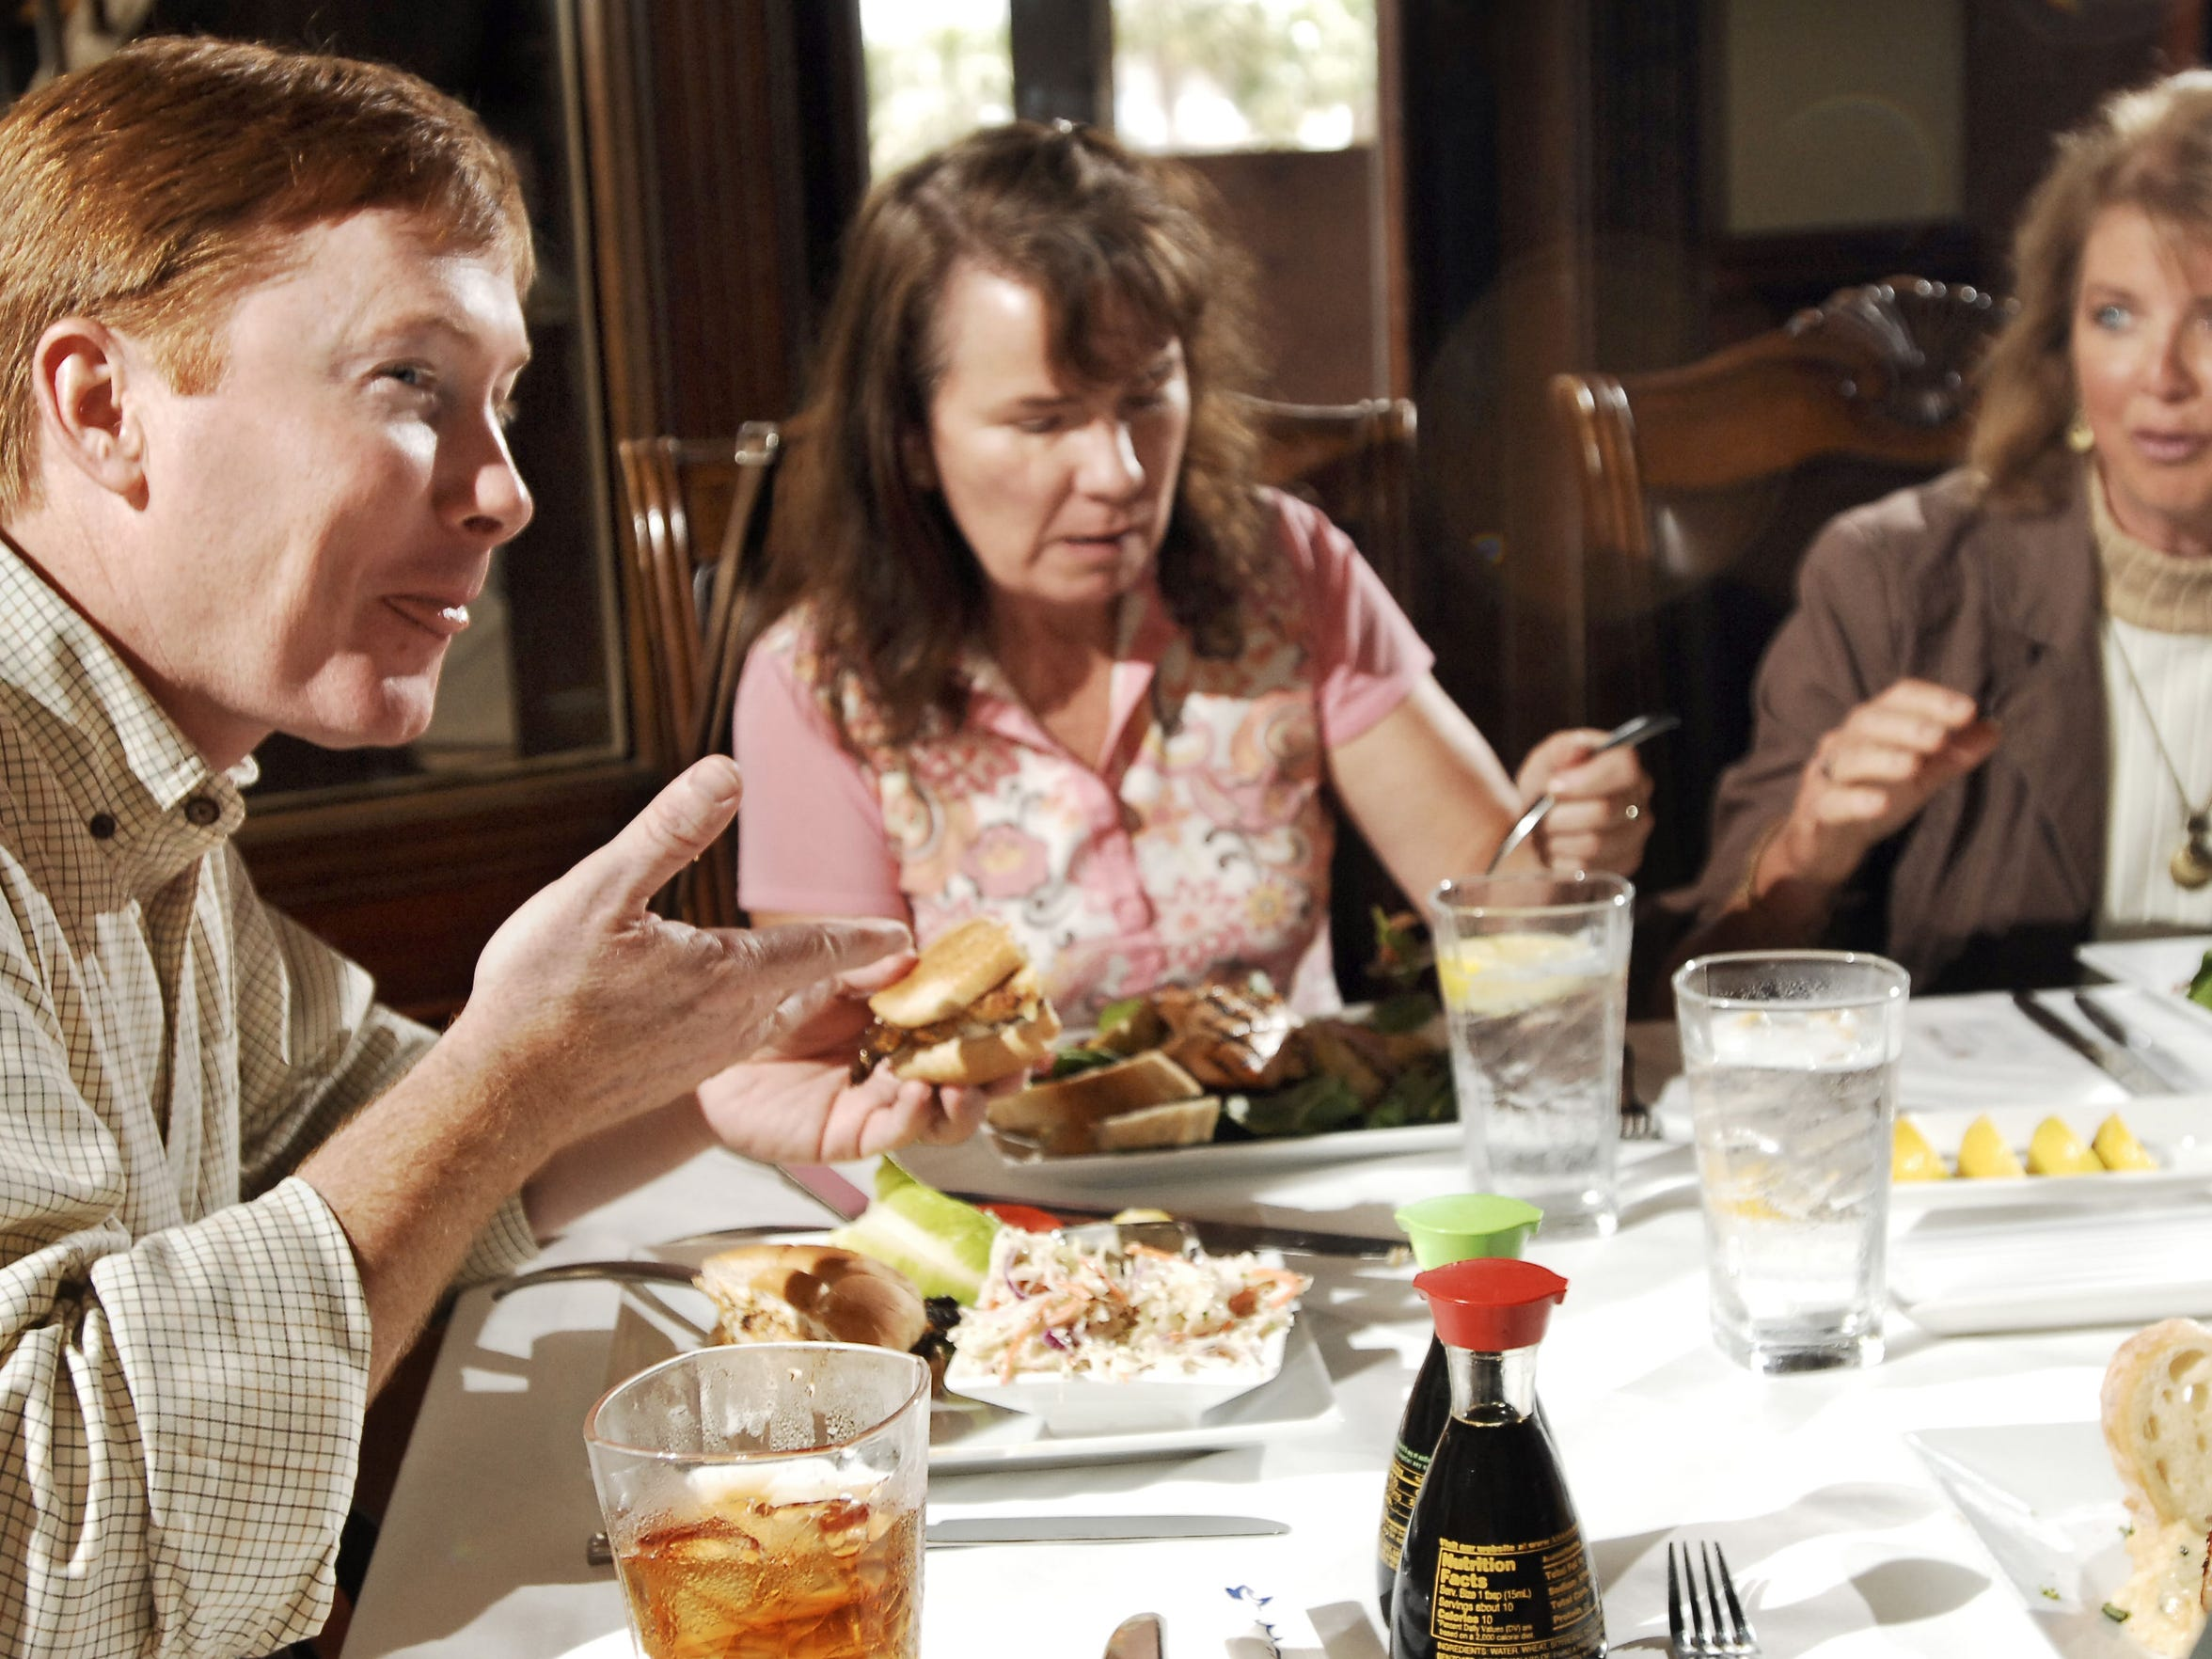 Florida Agriculture Commissioner Adam Putnam, left, talks with Centerline Solutions consultant Janet Walsh, center, and Cindy Anderson with the Panhandle Fresh Marketing Association, while eating a blackened grouper sandwich during a lunch meeting at The Fish House. Putnam met with business leaders, consultants, farmers and agricultural leaders over a seafood lunch on the one-year anniversary of the BP oil spill, emphasizing the fact that state testing has determined local seafood to be safe to eat.